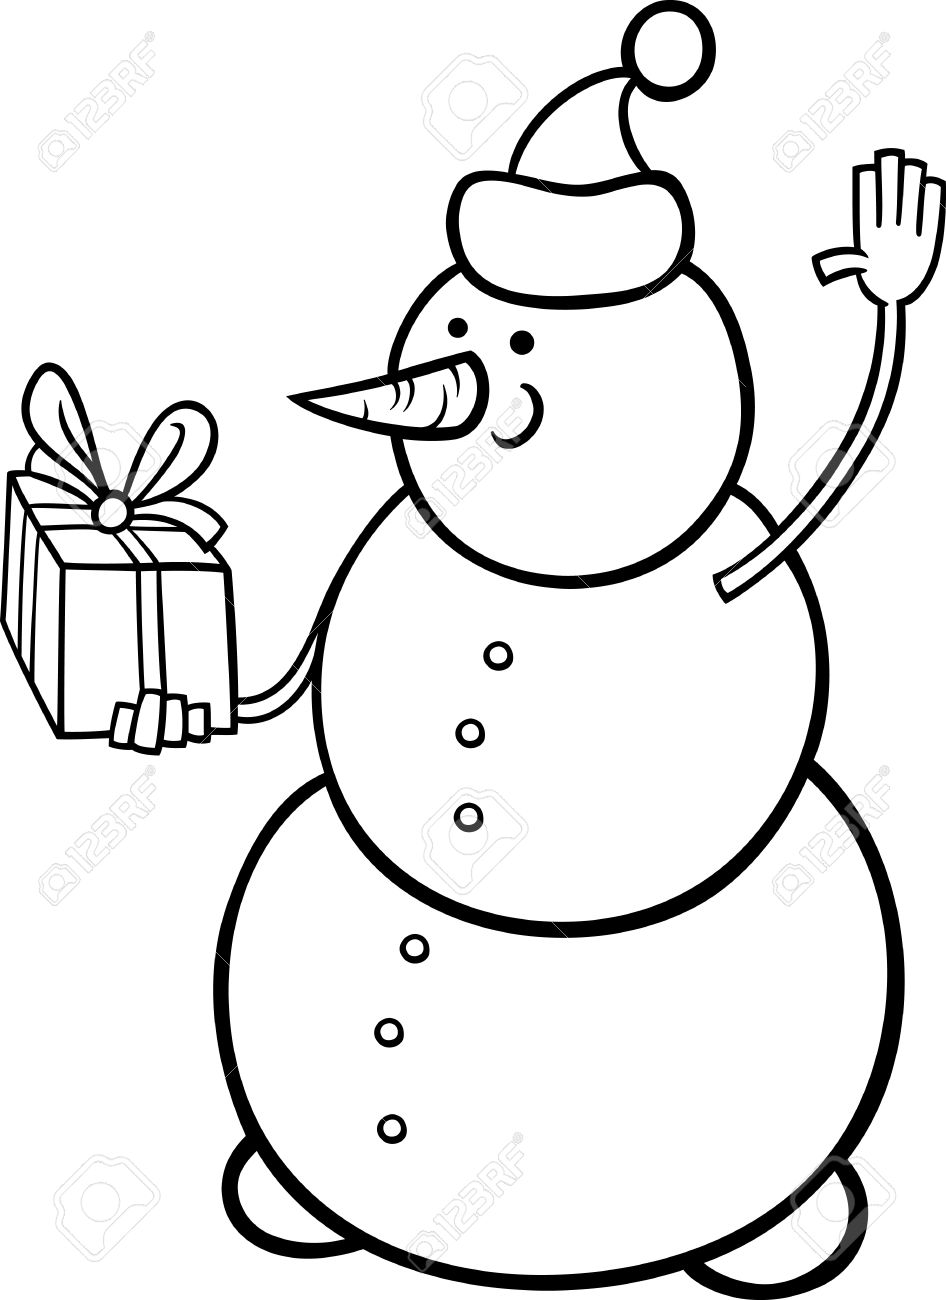 black and white cartoon illustration of snowman as santa claus character with christmas present or gift